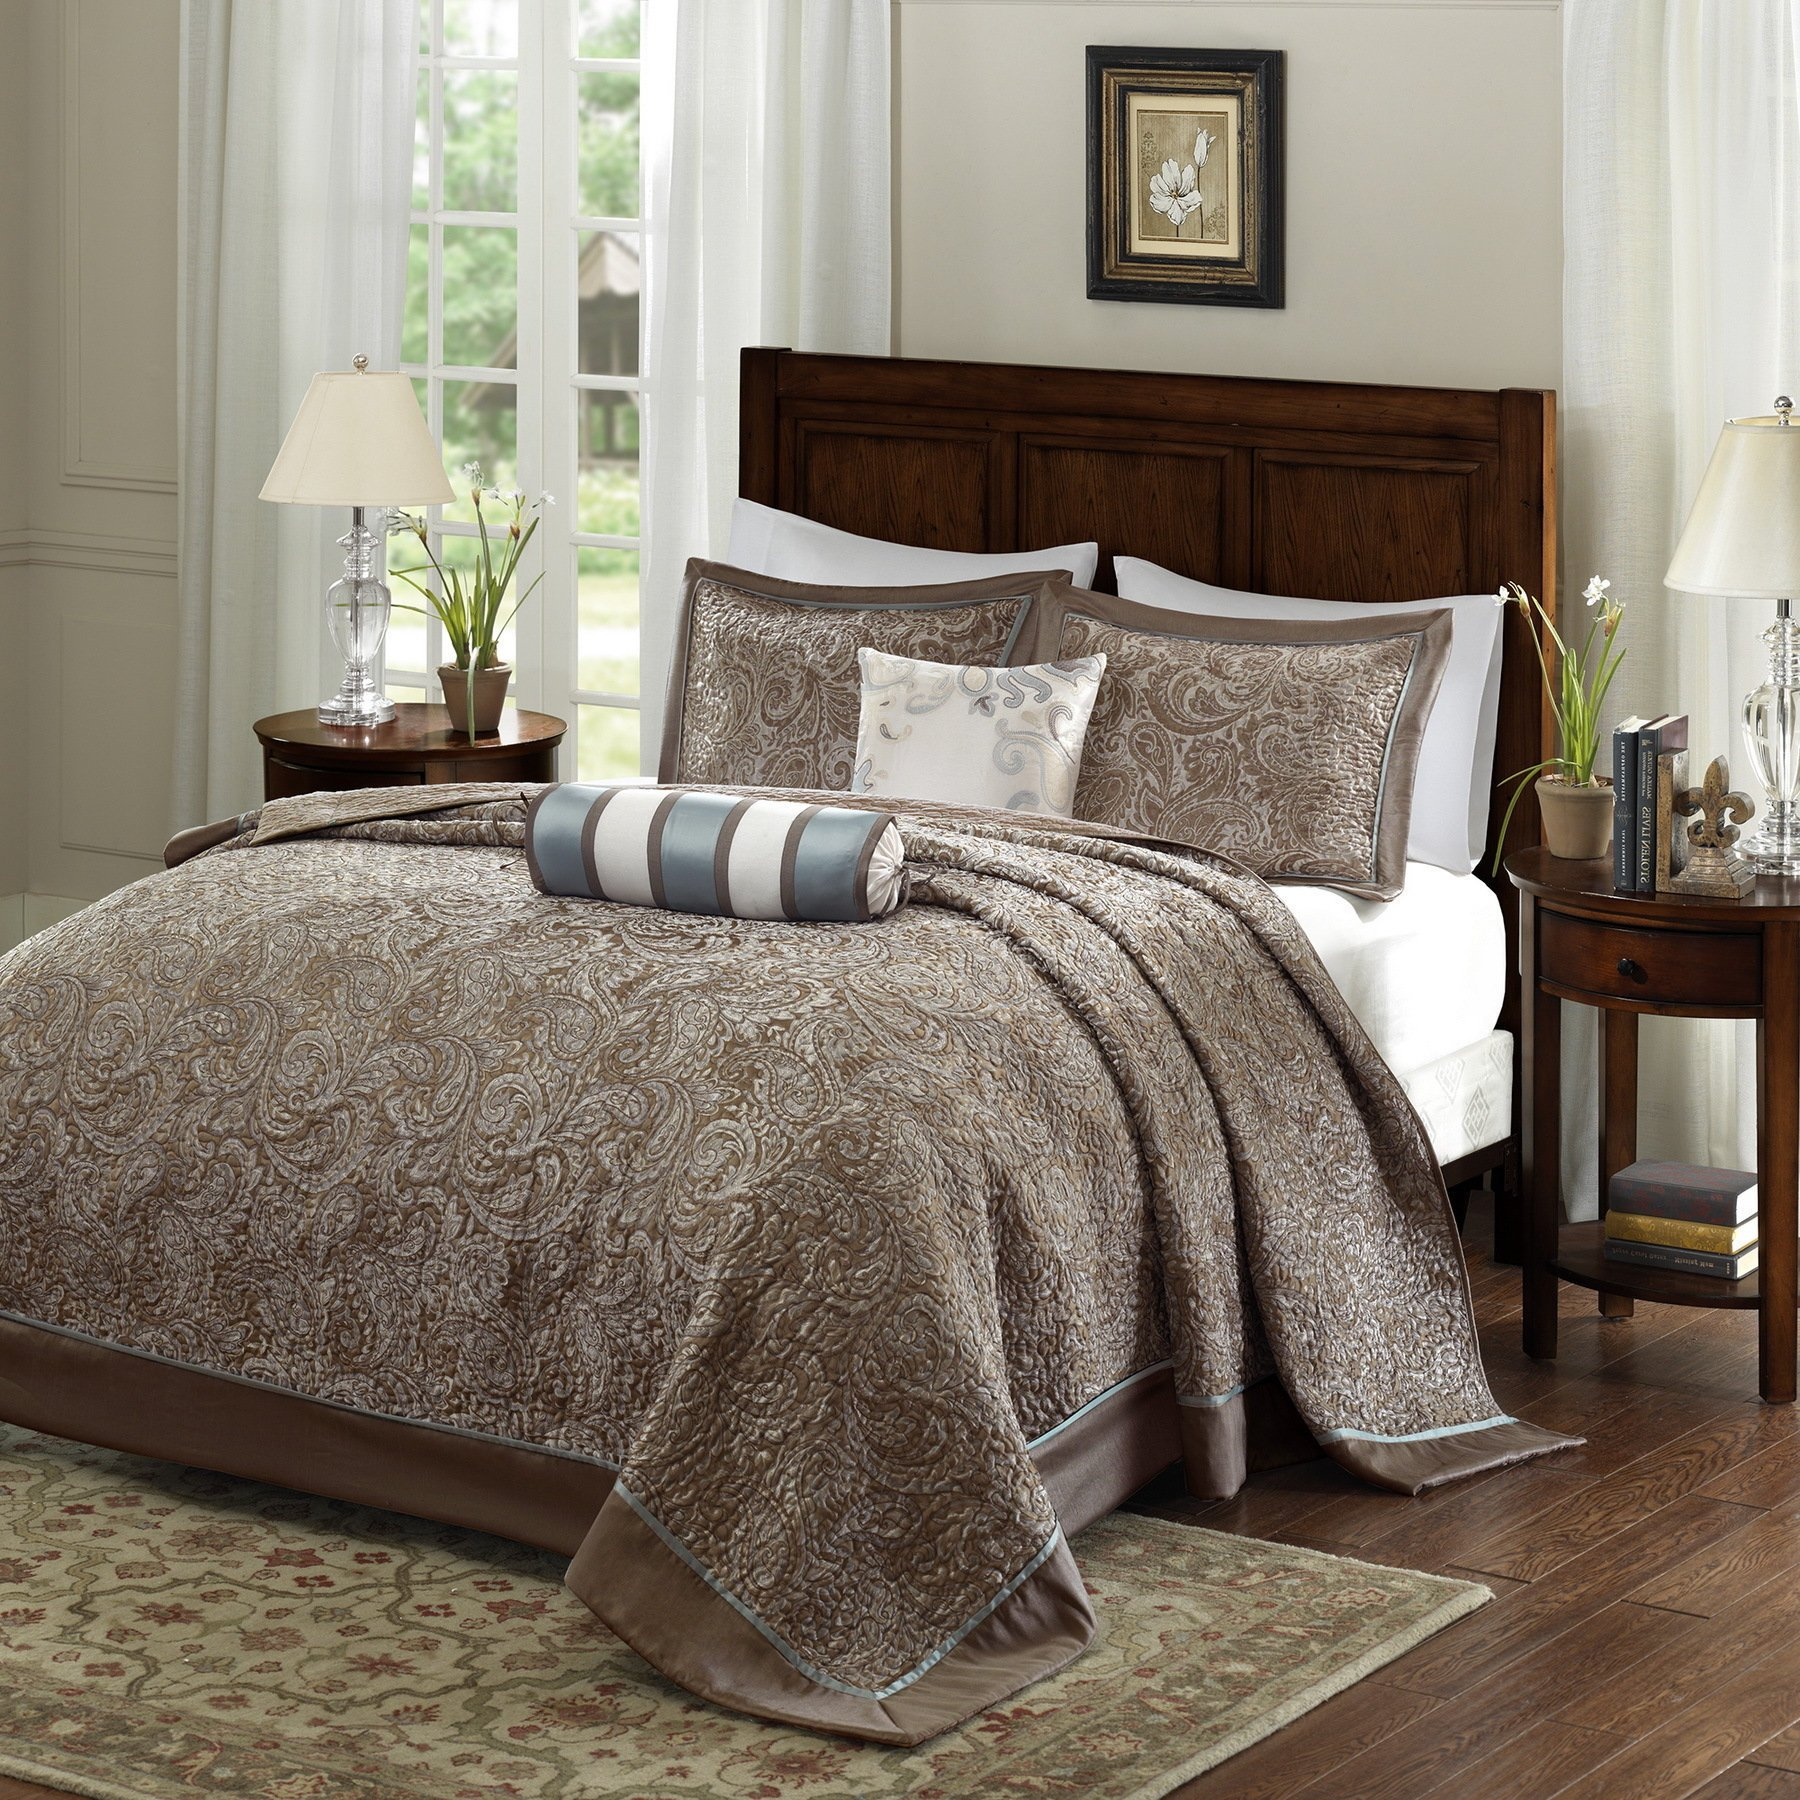 DH 5 Piece 120 x 118 Oversized Blue Brown King Bedspread To The Floor Set, Extra Long Jacquard Paisley Bedding Xtra Wide Drops Over Edge Frame, Drapes Down Sides Hangs Over Bed, Polyester